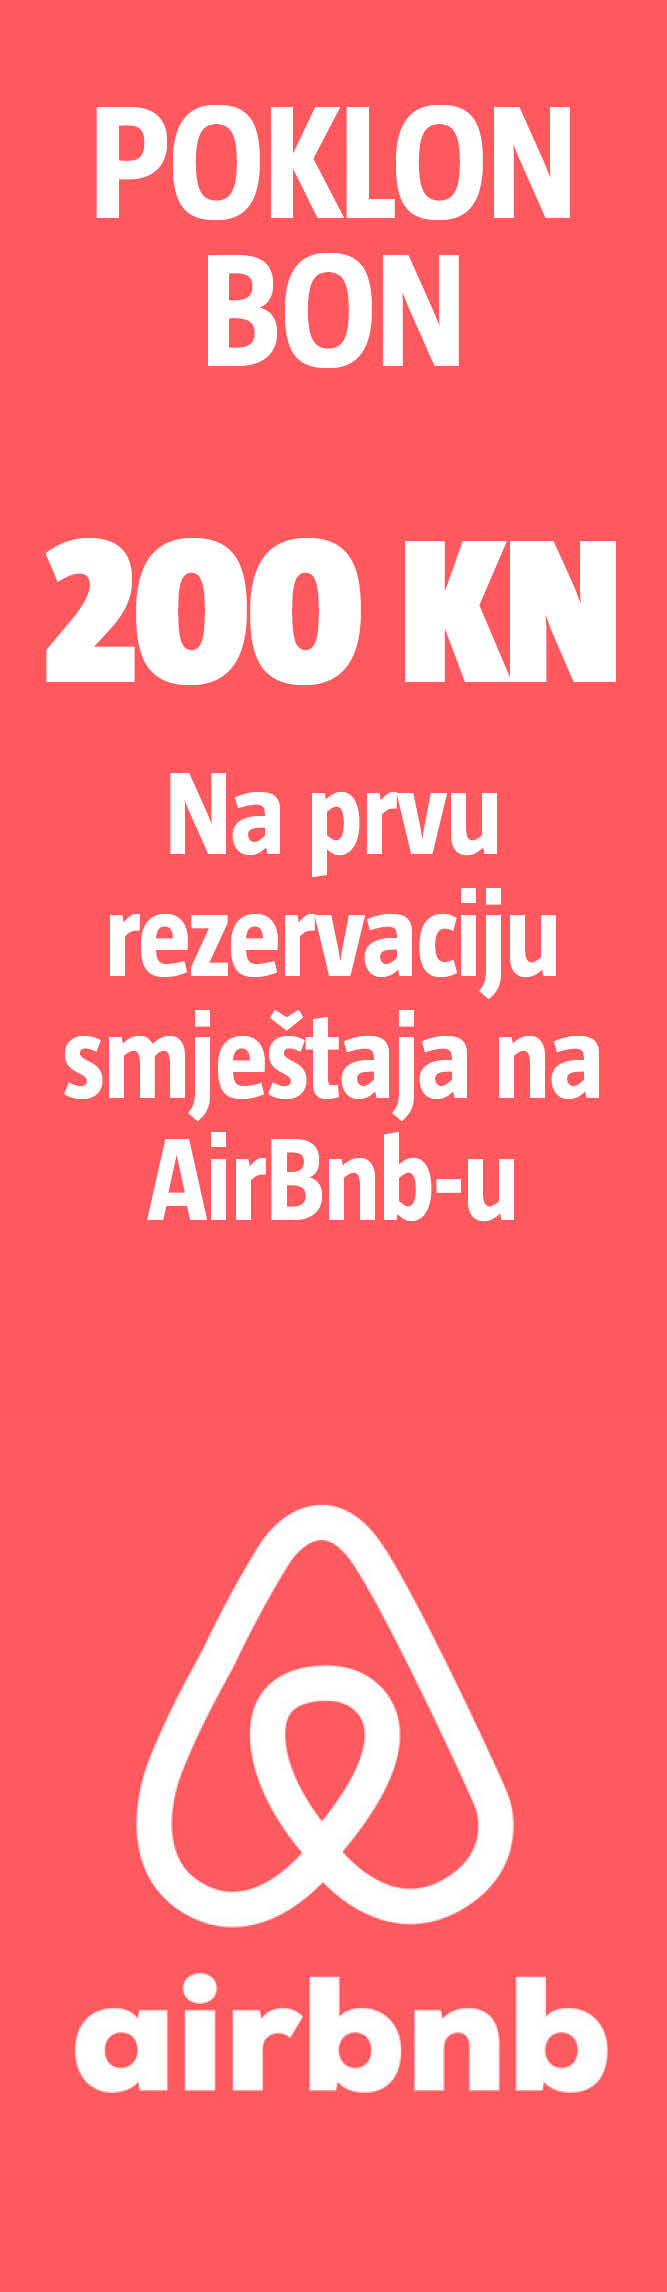 AirBnb popust